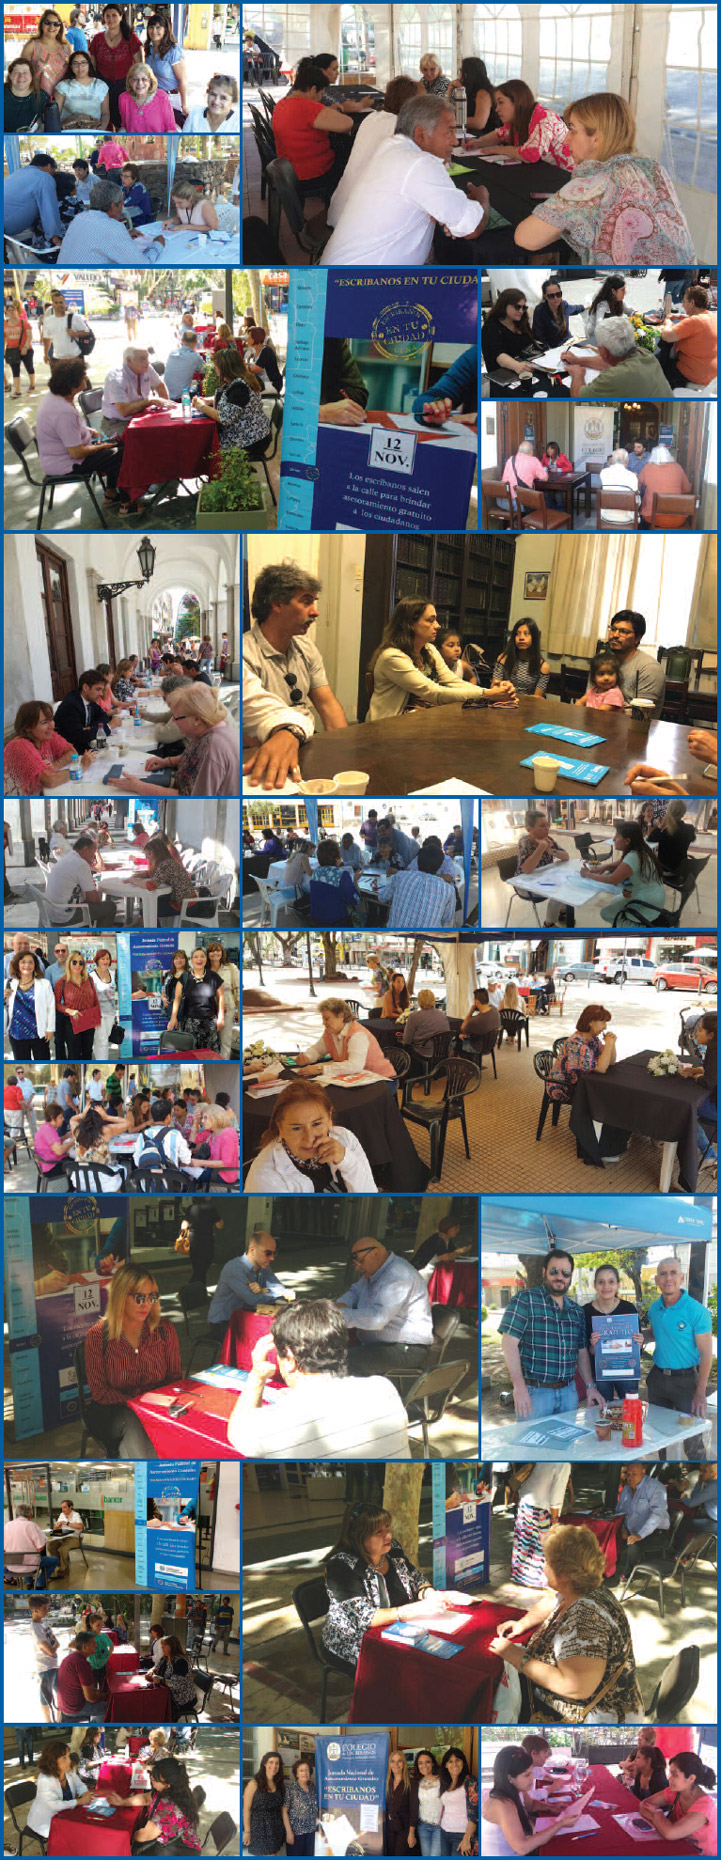 collage jornada federal asesoramiento gratuito 2016